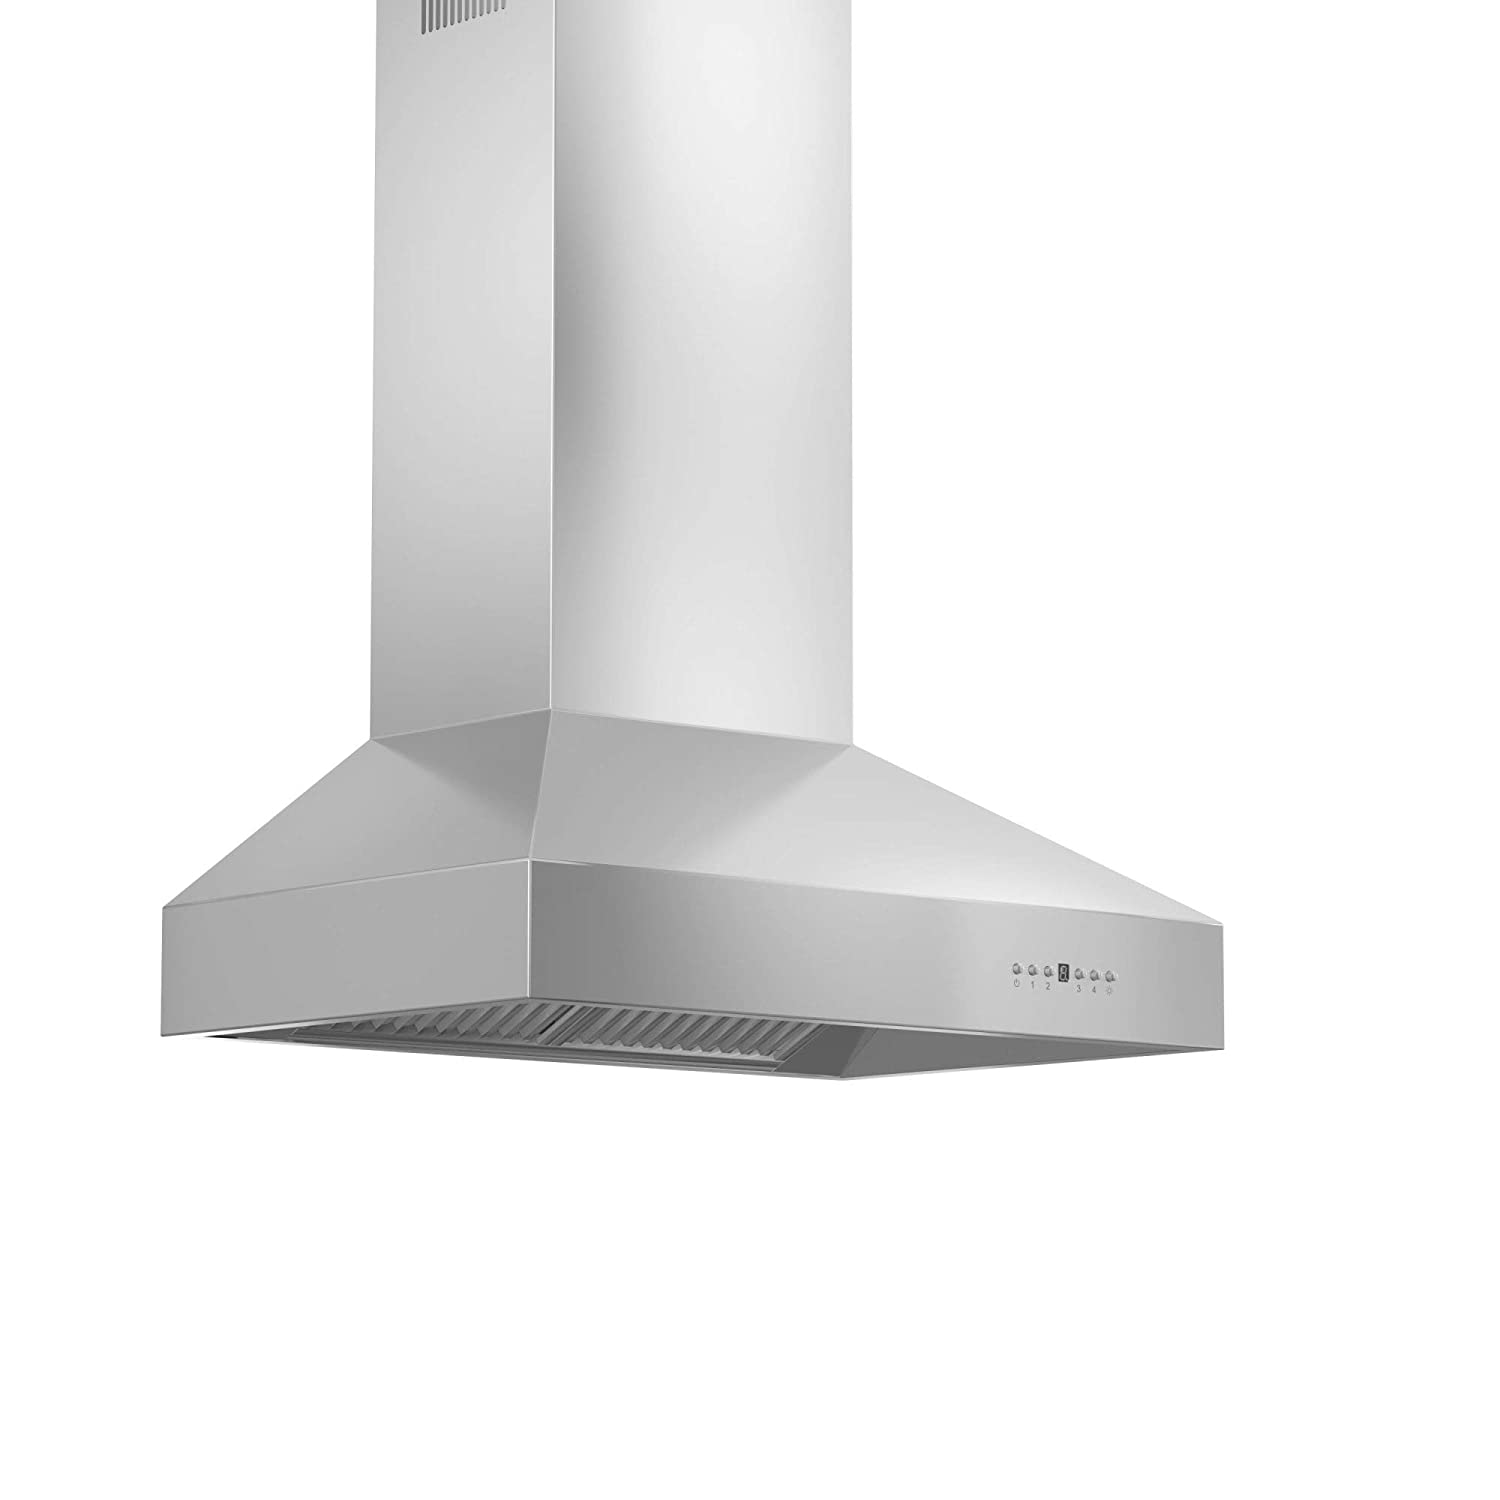 Stainless Steel Z Line KL2CRN-30 Z Line 760 CFM Wall Mount Range Hood with Crown Molding 30